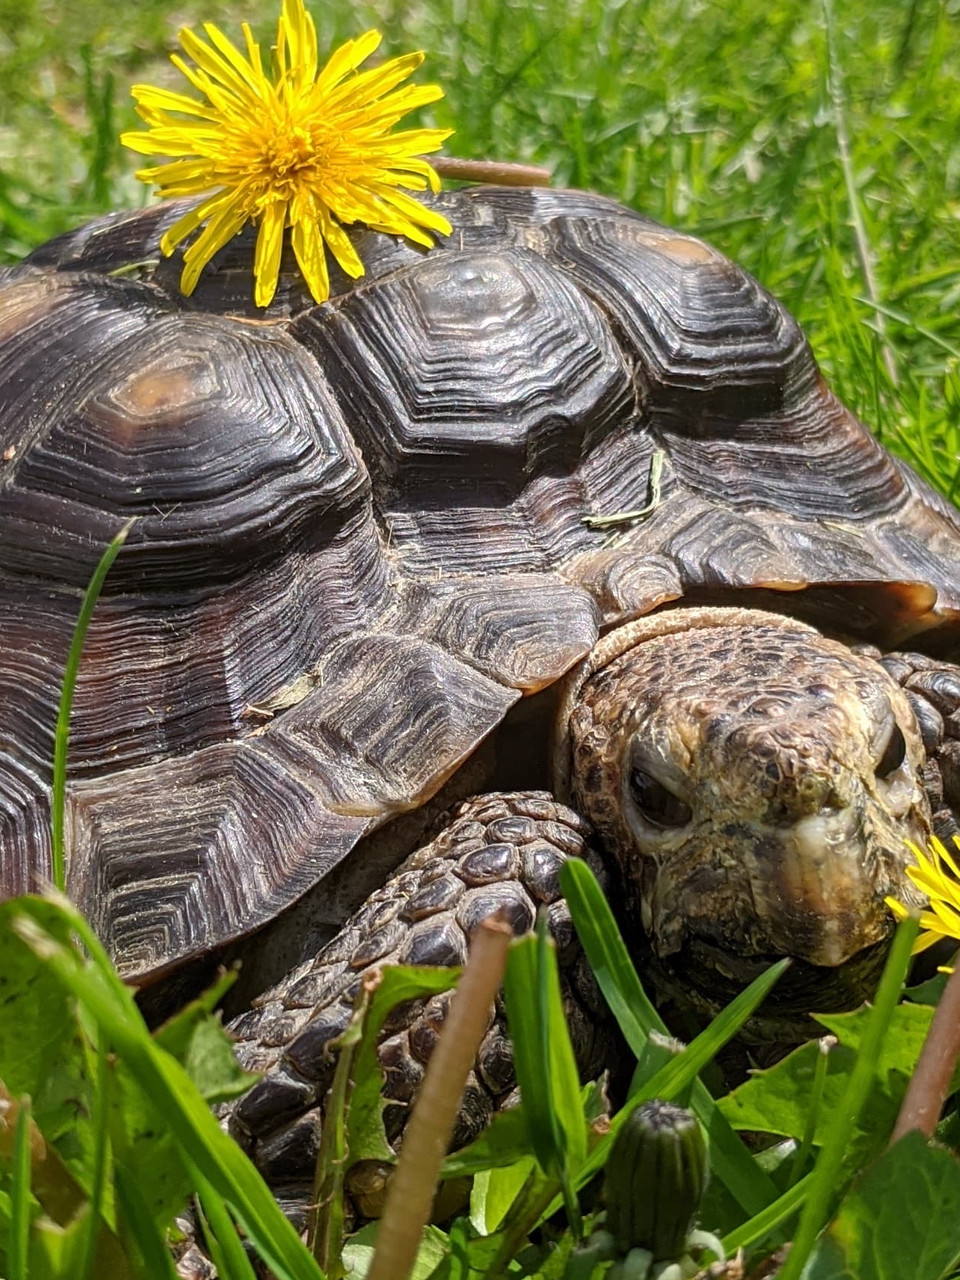 53 Year Old Tortoise Needs New Home After Owner Dies Of Covid 19 Wjar